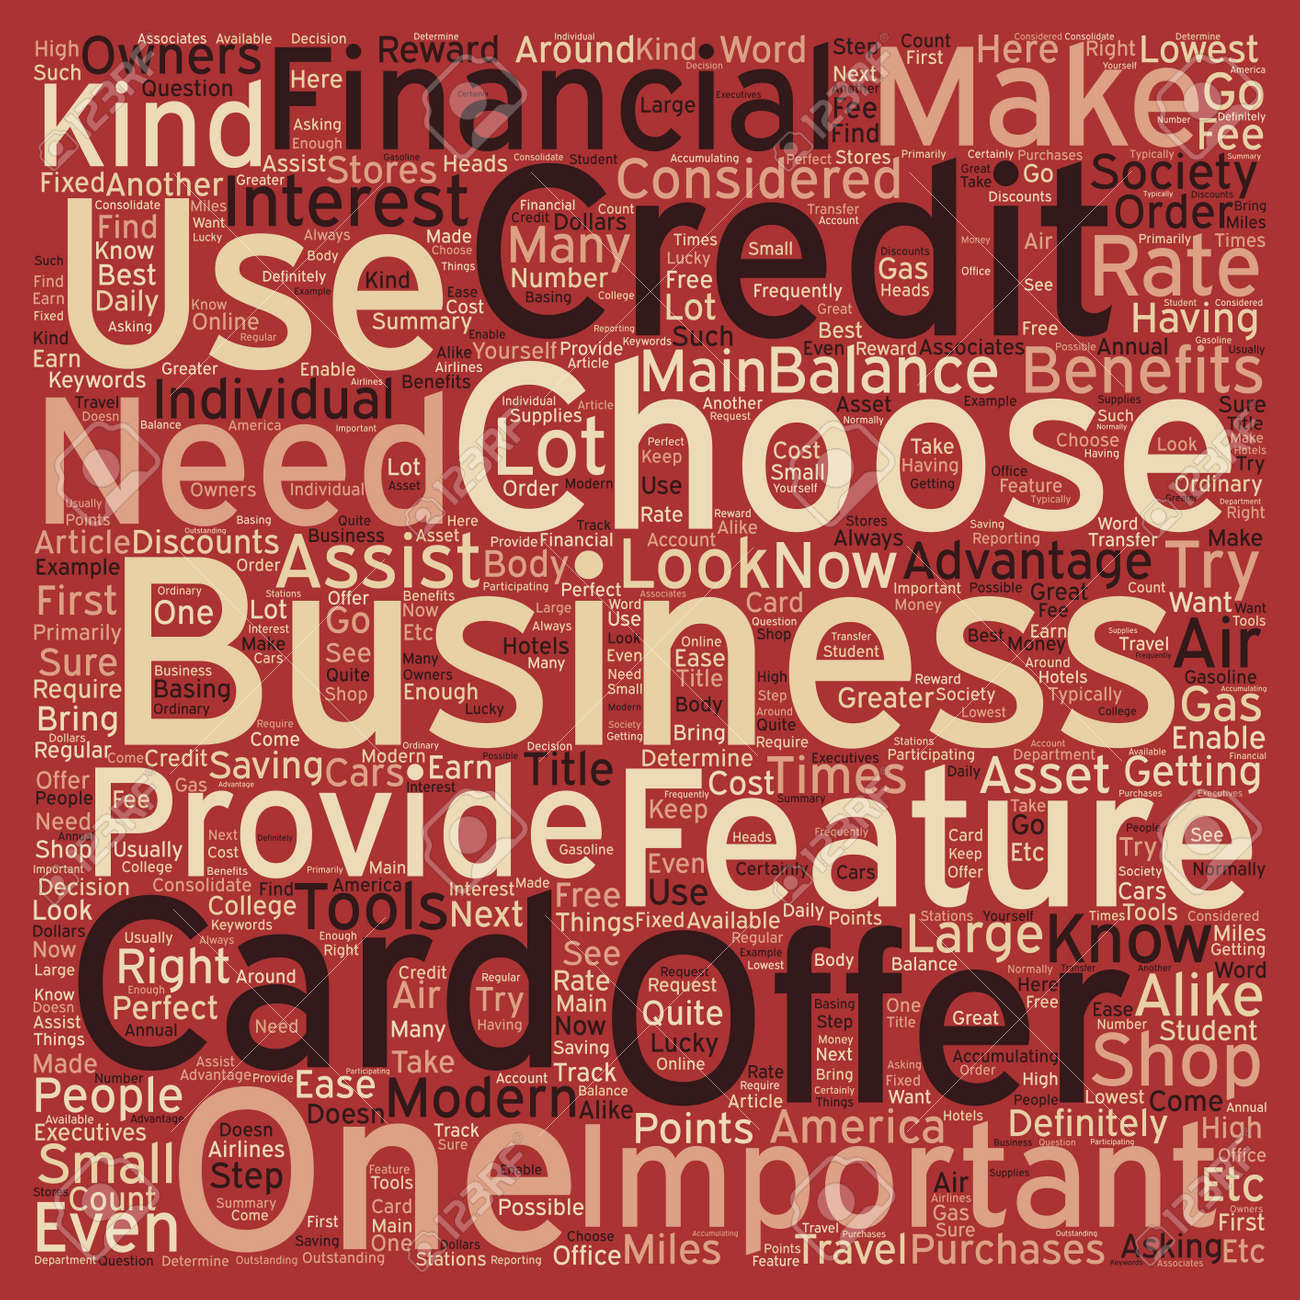 Business credit cards credit card offers that is perfect for business credit cards credit card offers that is perfect for your business text background wordcloud concept colourmoves